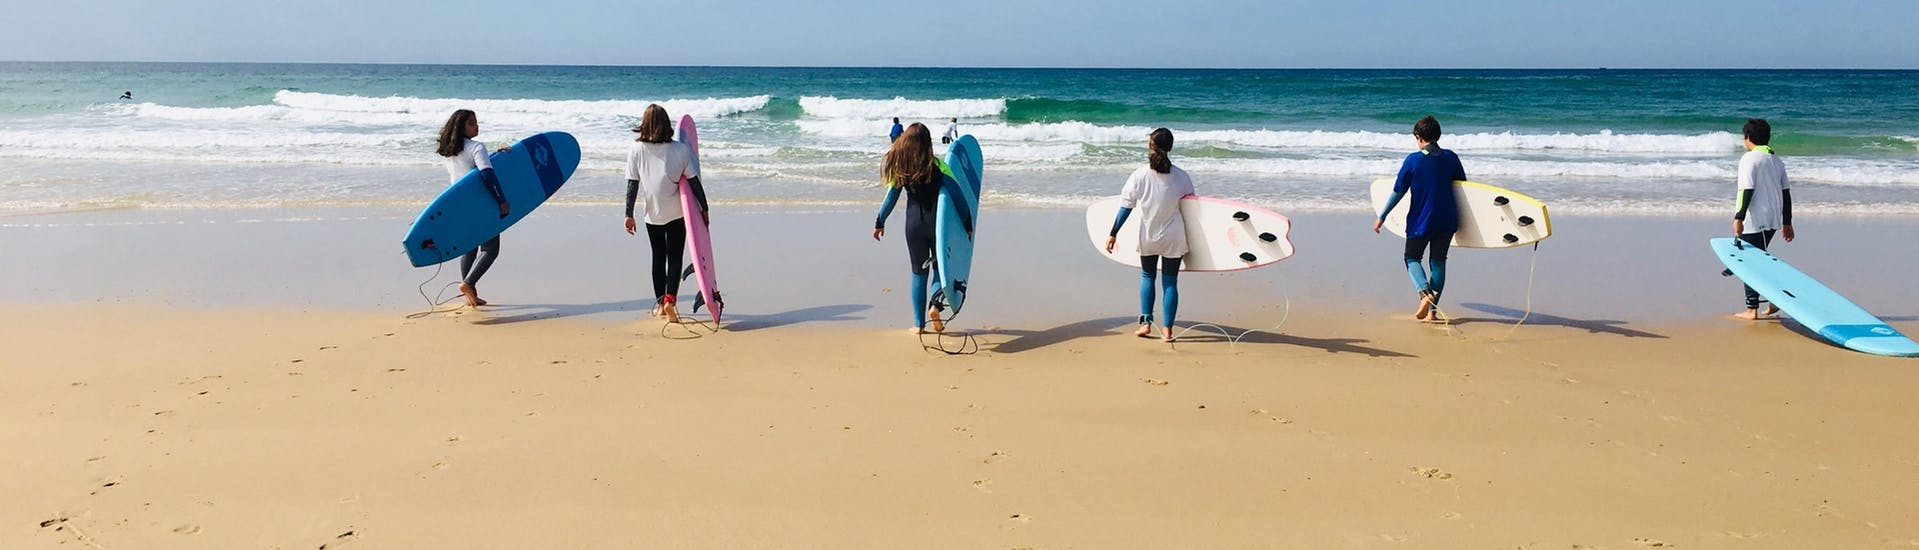 A group of friends are going to have their surf lessons at Biscarrosse with It's On Surf School.